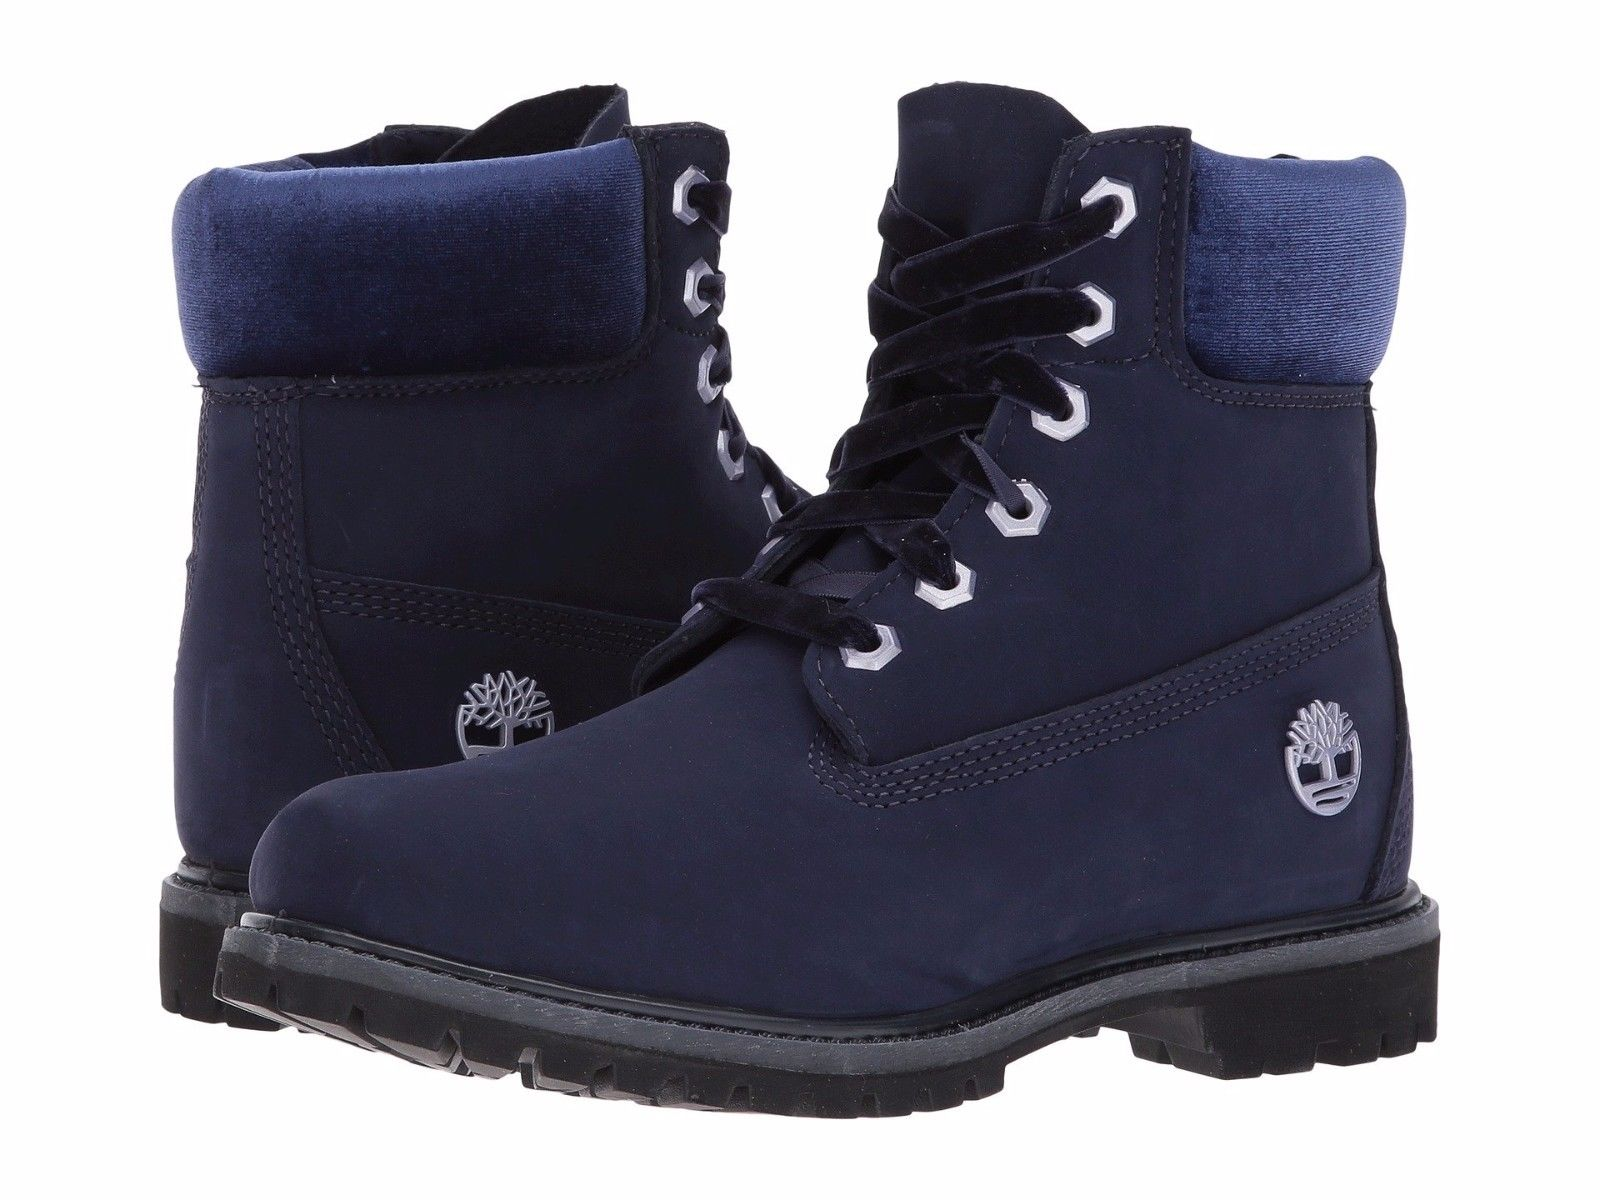 Timberland Womens 6 In Prem TB0A1KC5 Boot NAVY VELVET by Timberland